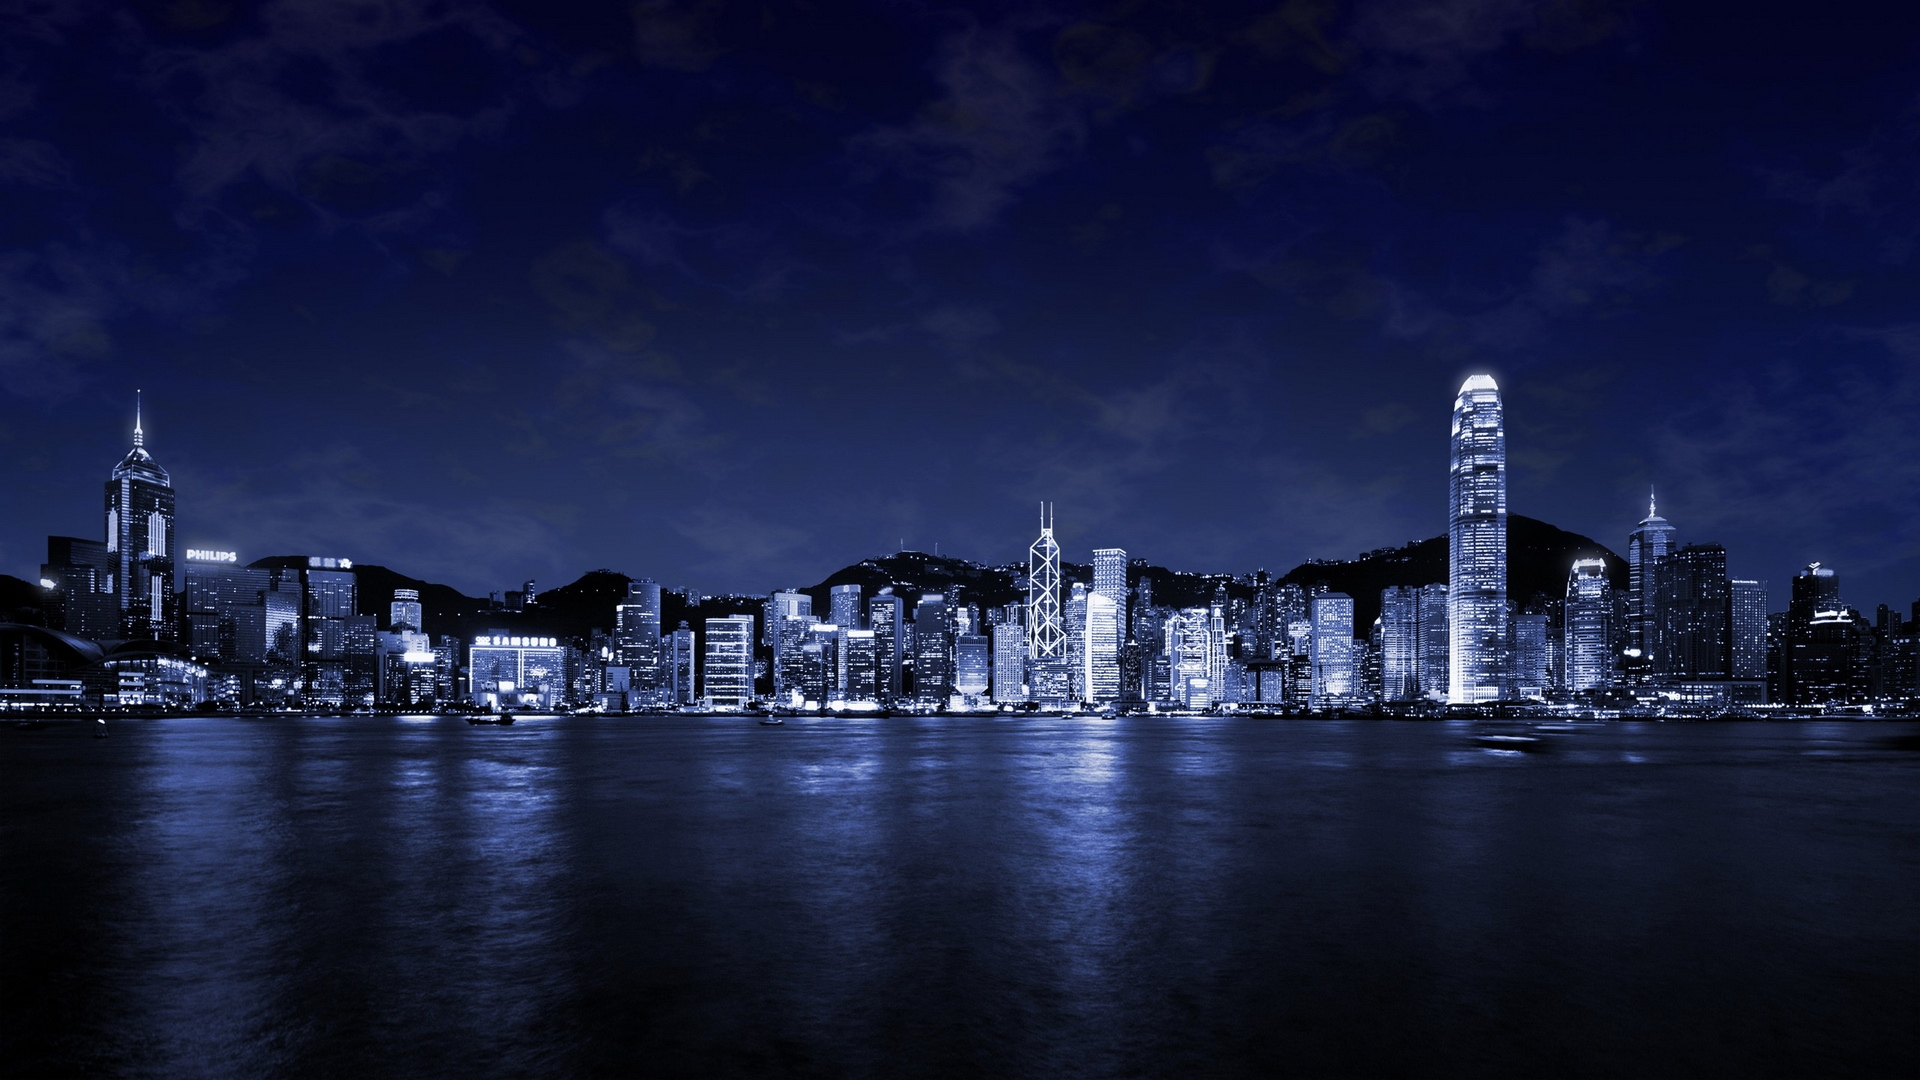 Free Download City At Night Wallpaper 724296 1920x1080 For